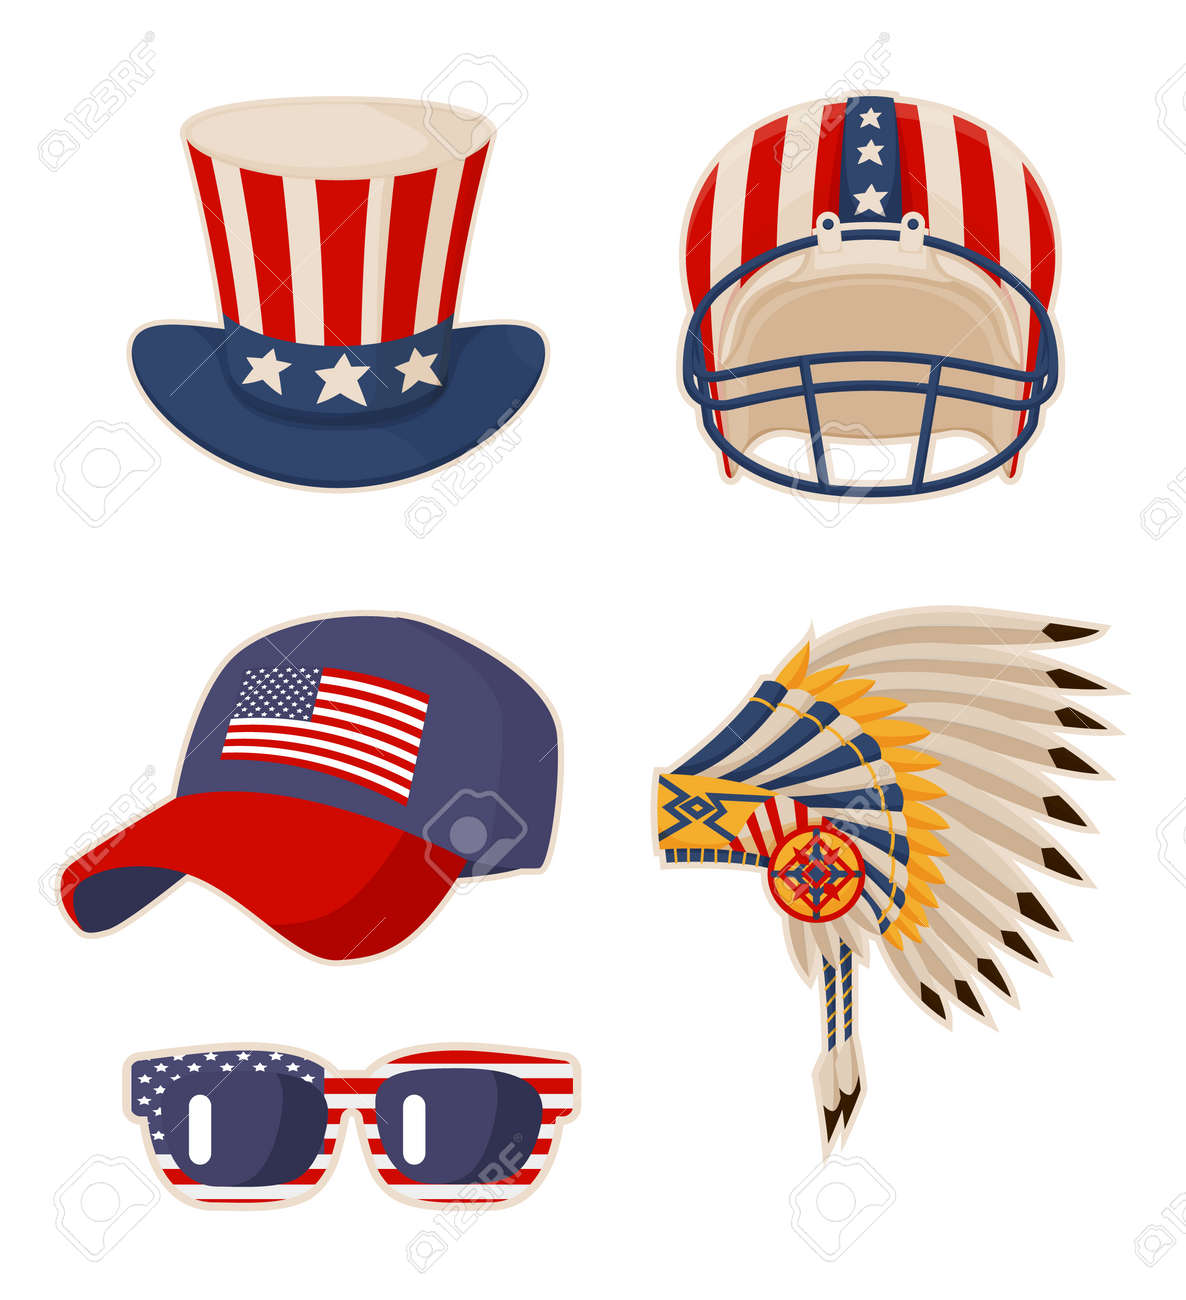 hight resolution of flag on items usa symbols cap and old glory indian headdress with feathers